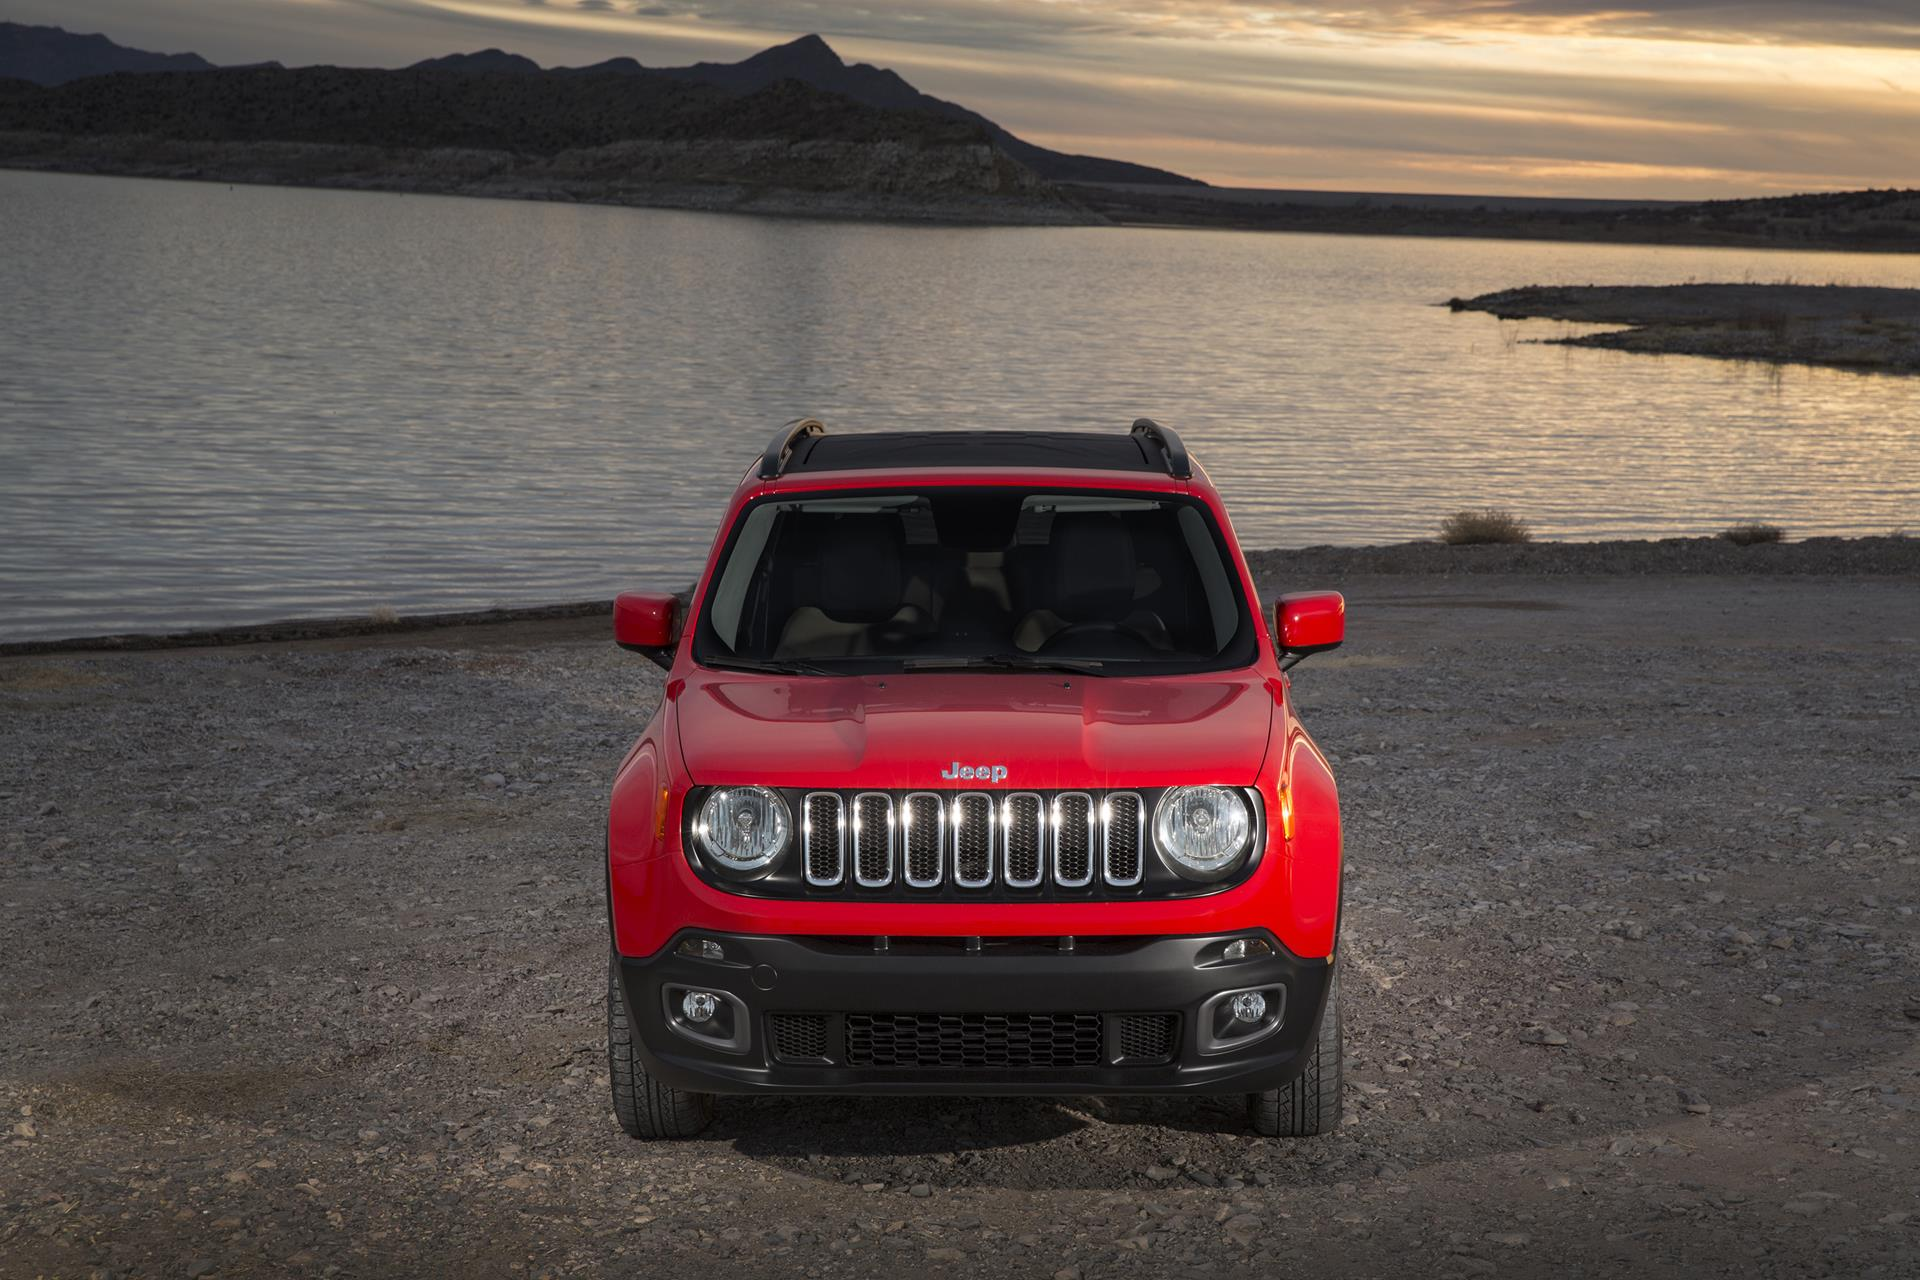 2015 jeep renegade technical specifications and data engine dimensions and mechanical details. Black Bedroom Furniture Sets. Home Design Ideas